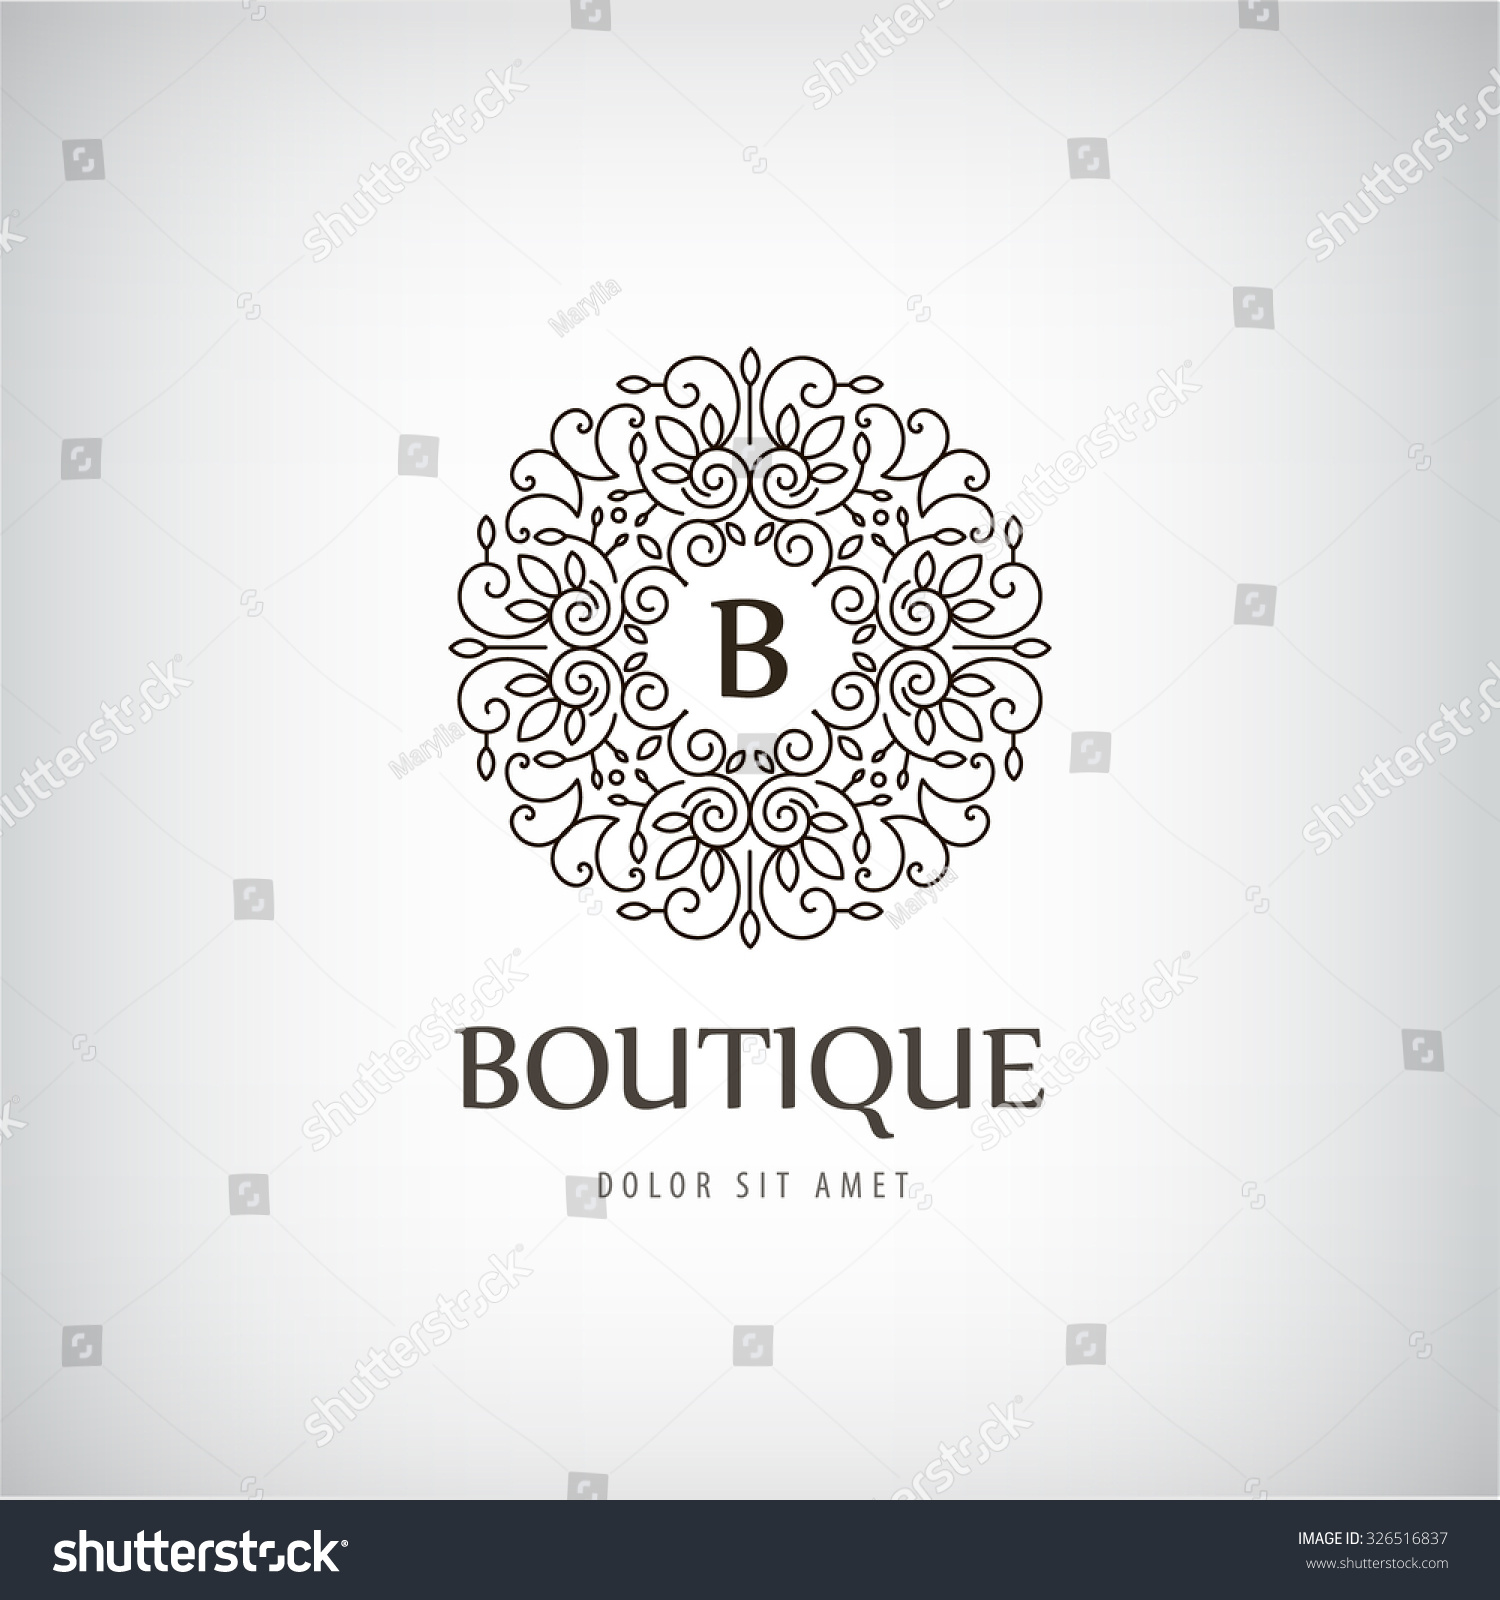 Vector luxury vintage logo icon business for Boutique hotel logo